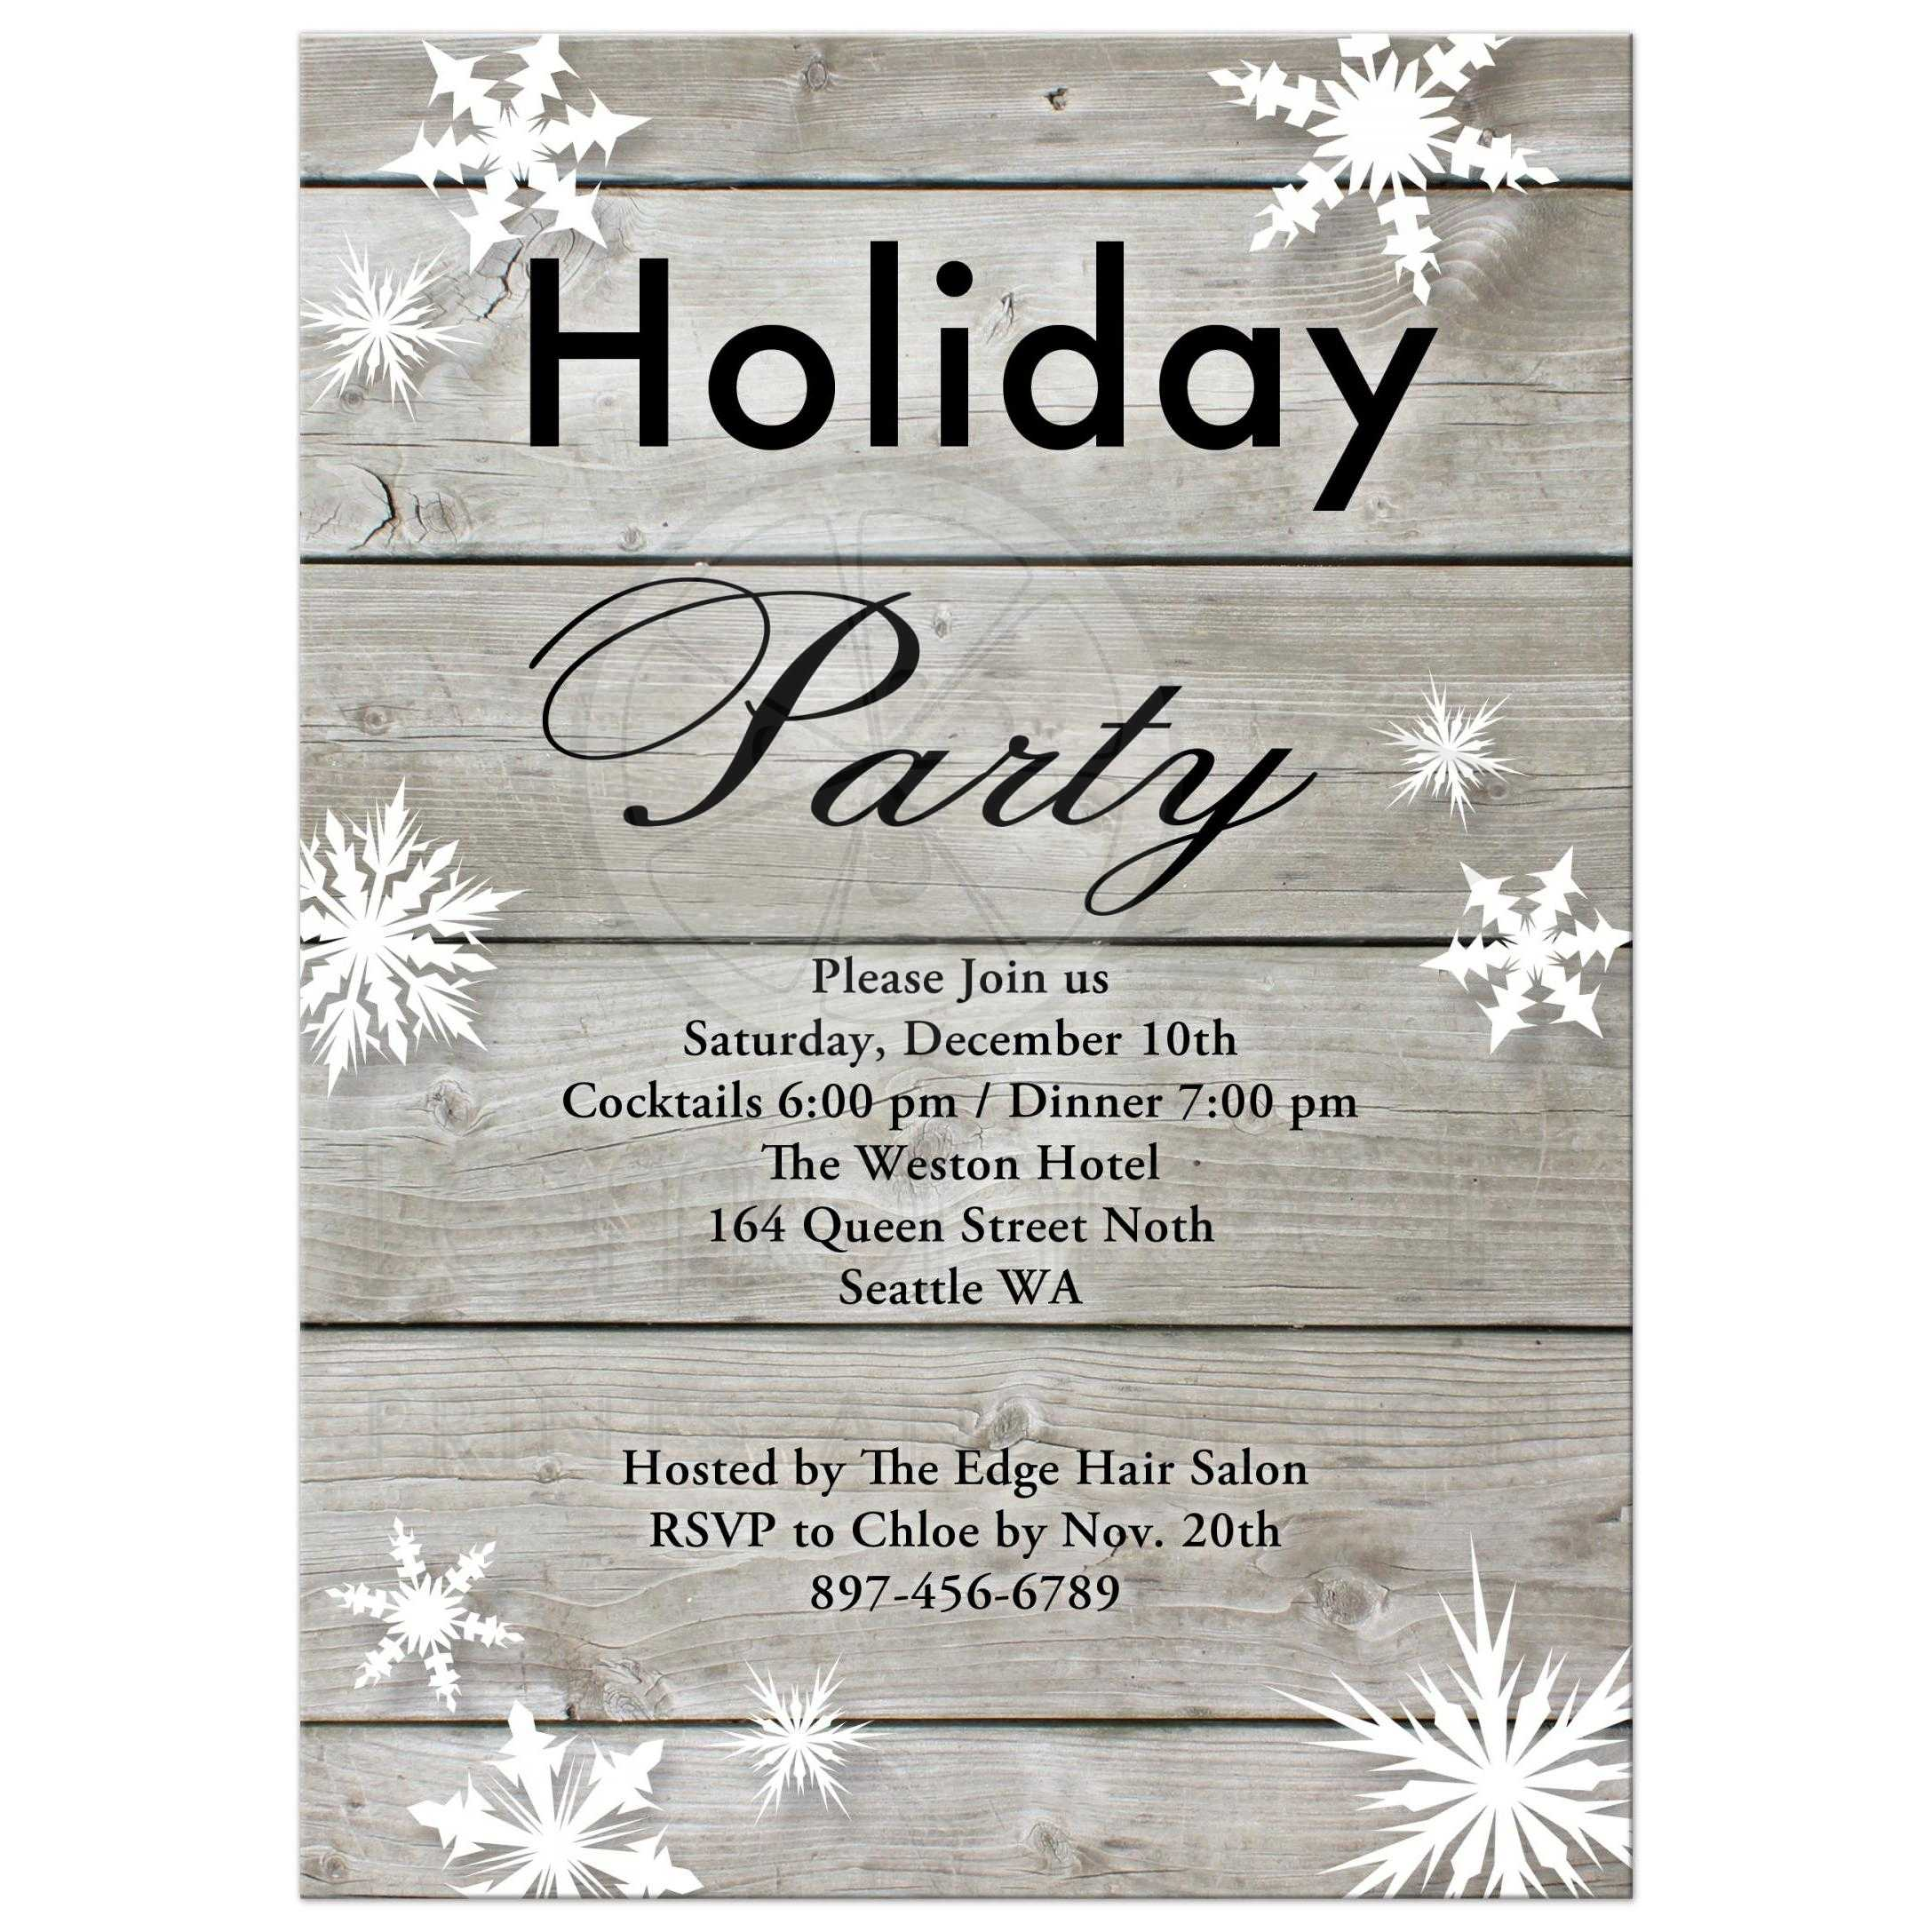 Corporate Holiday Party Invitation on Barn Board